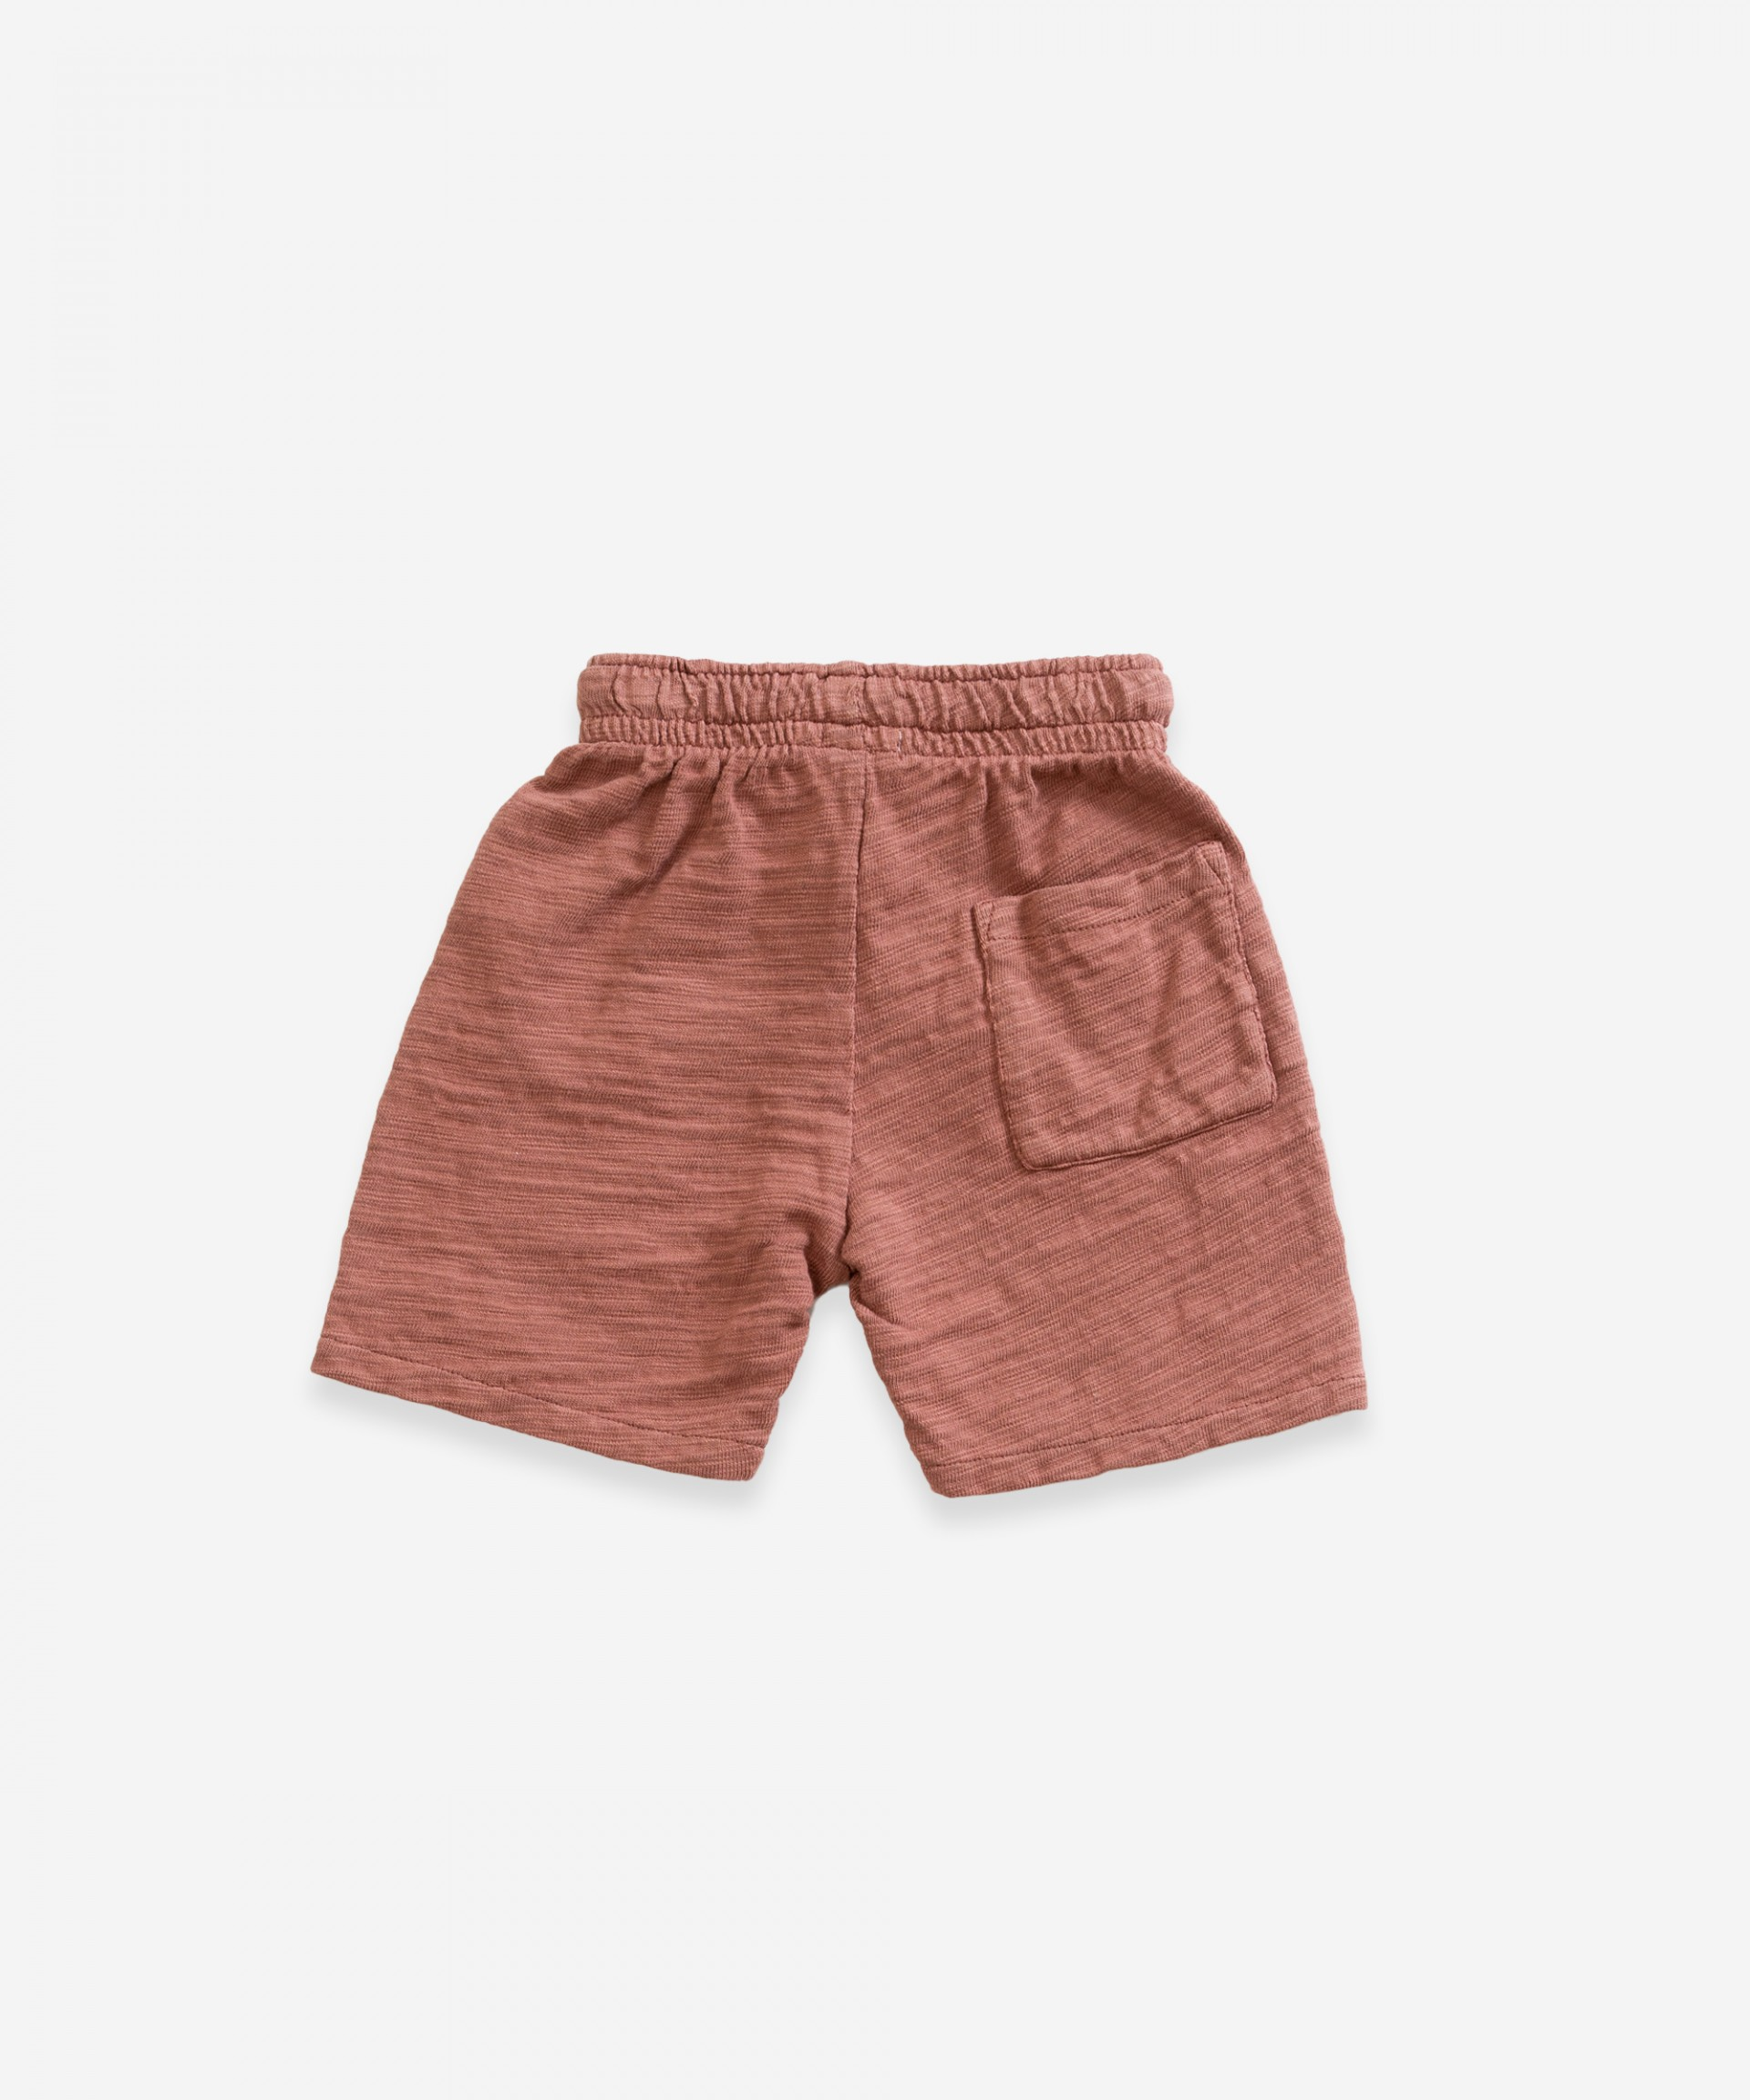 Cotton shorts | Weaving